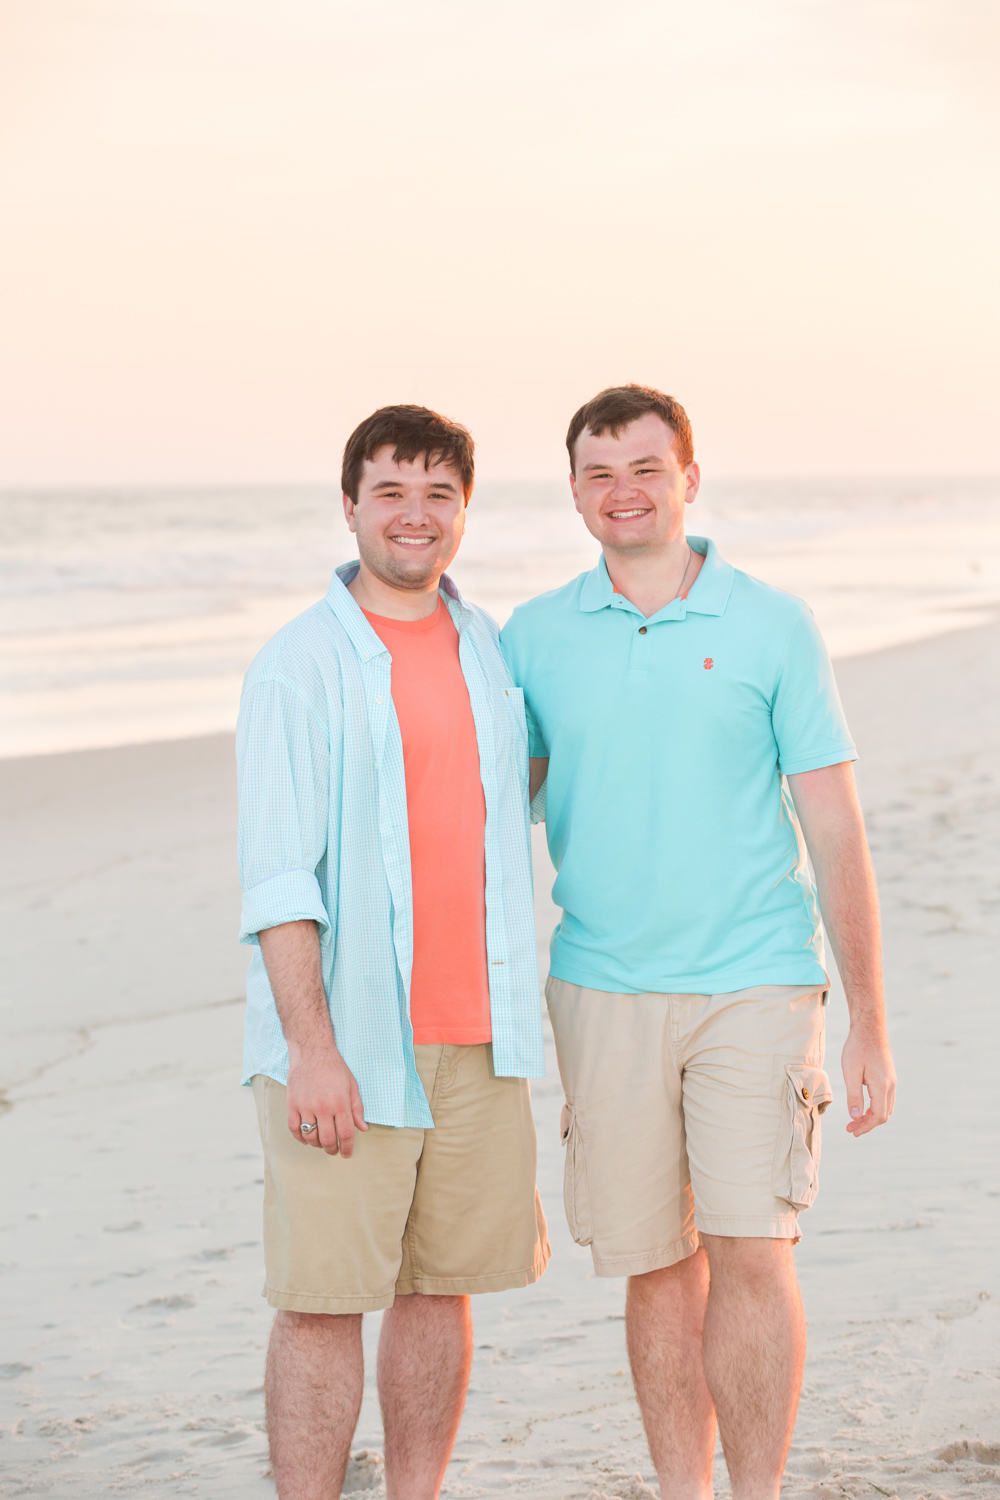 Siblings-Family-photographer-Long-Island-Beach.jpg